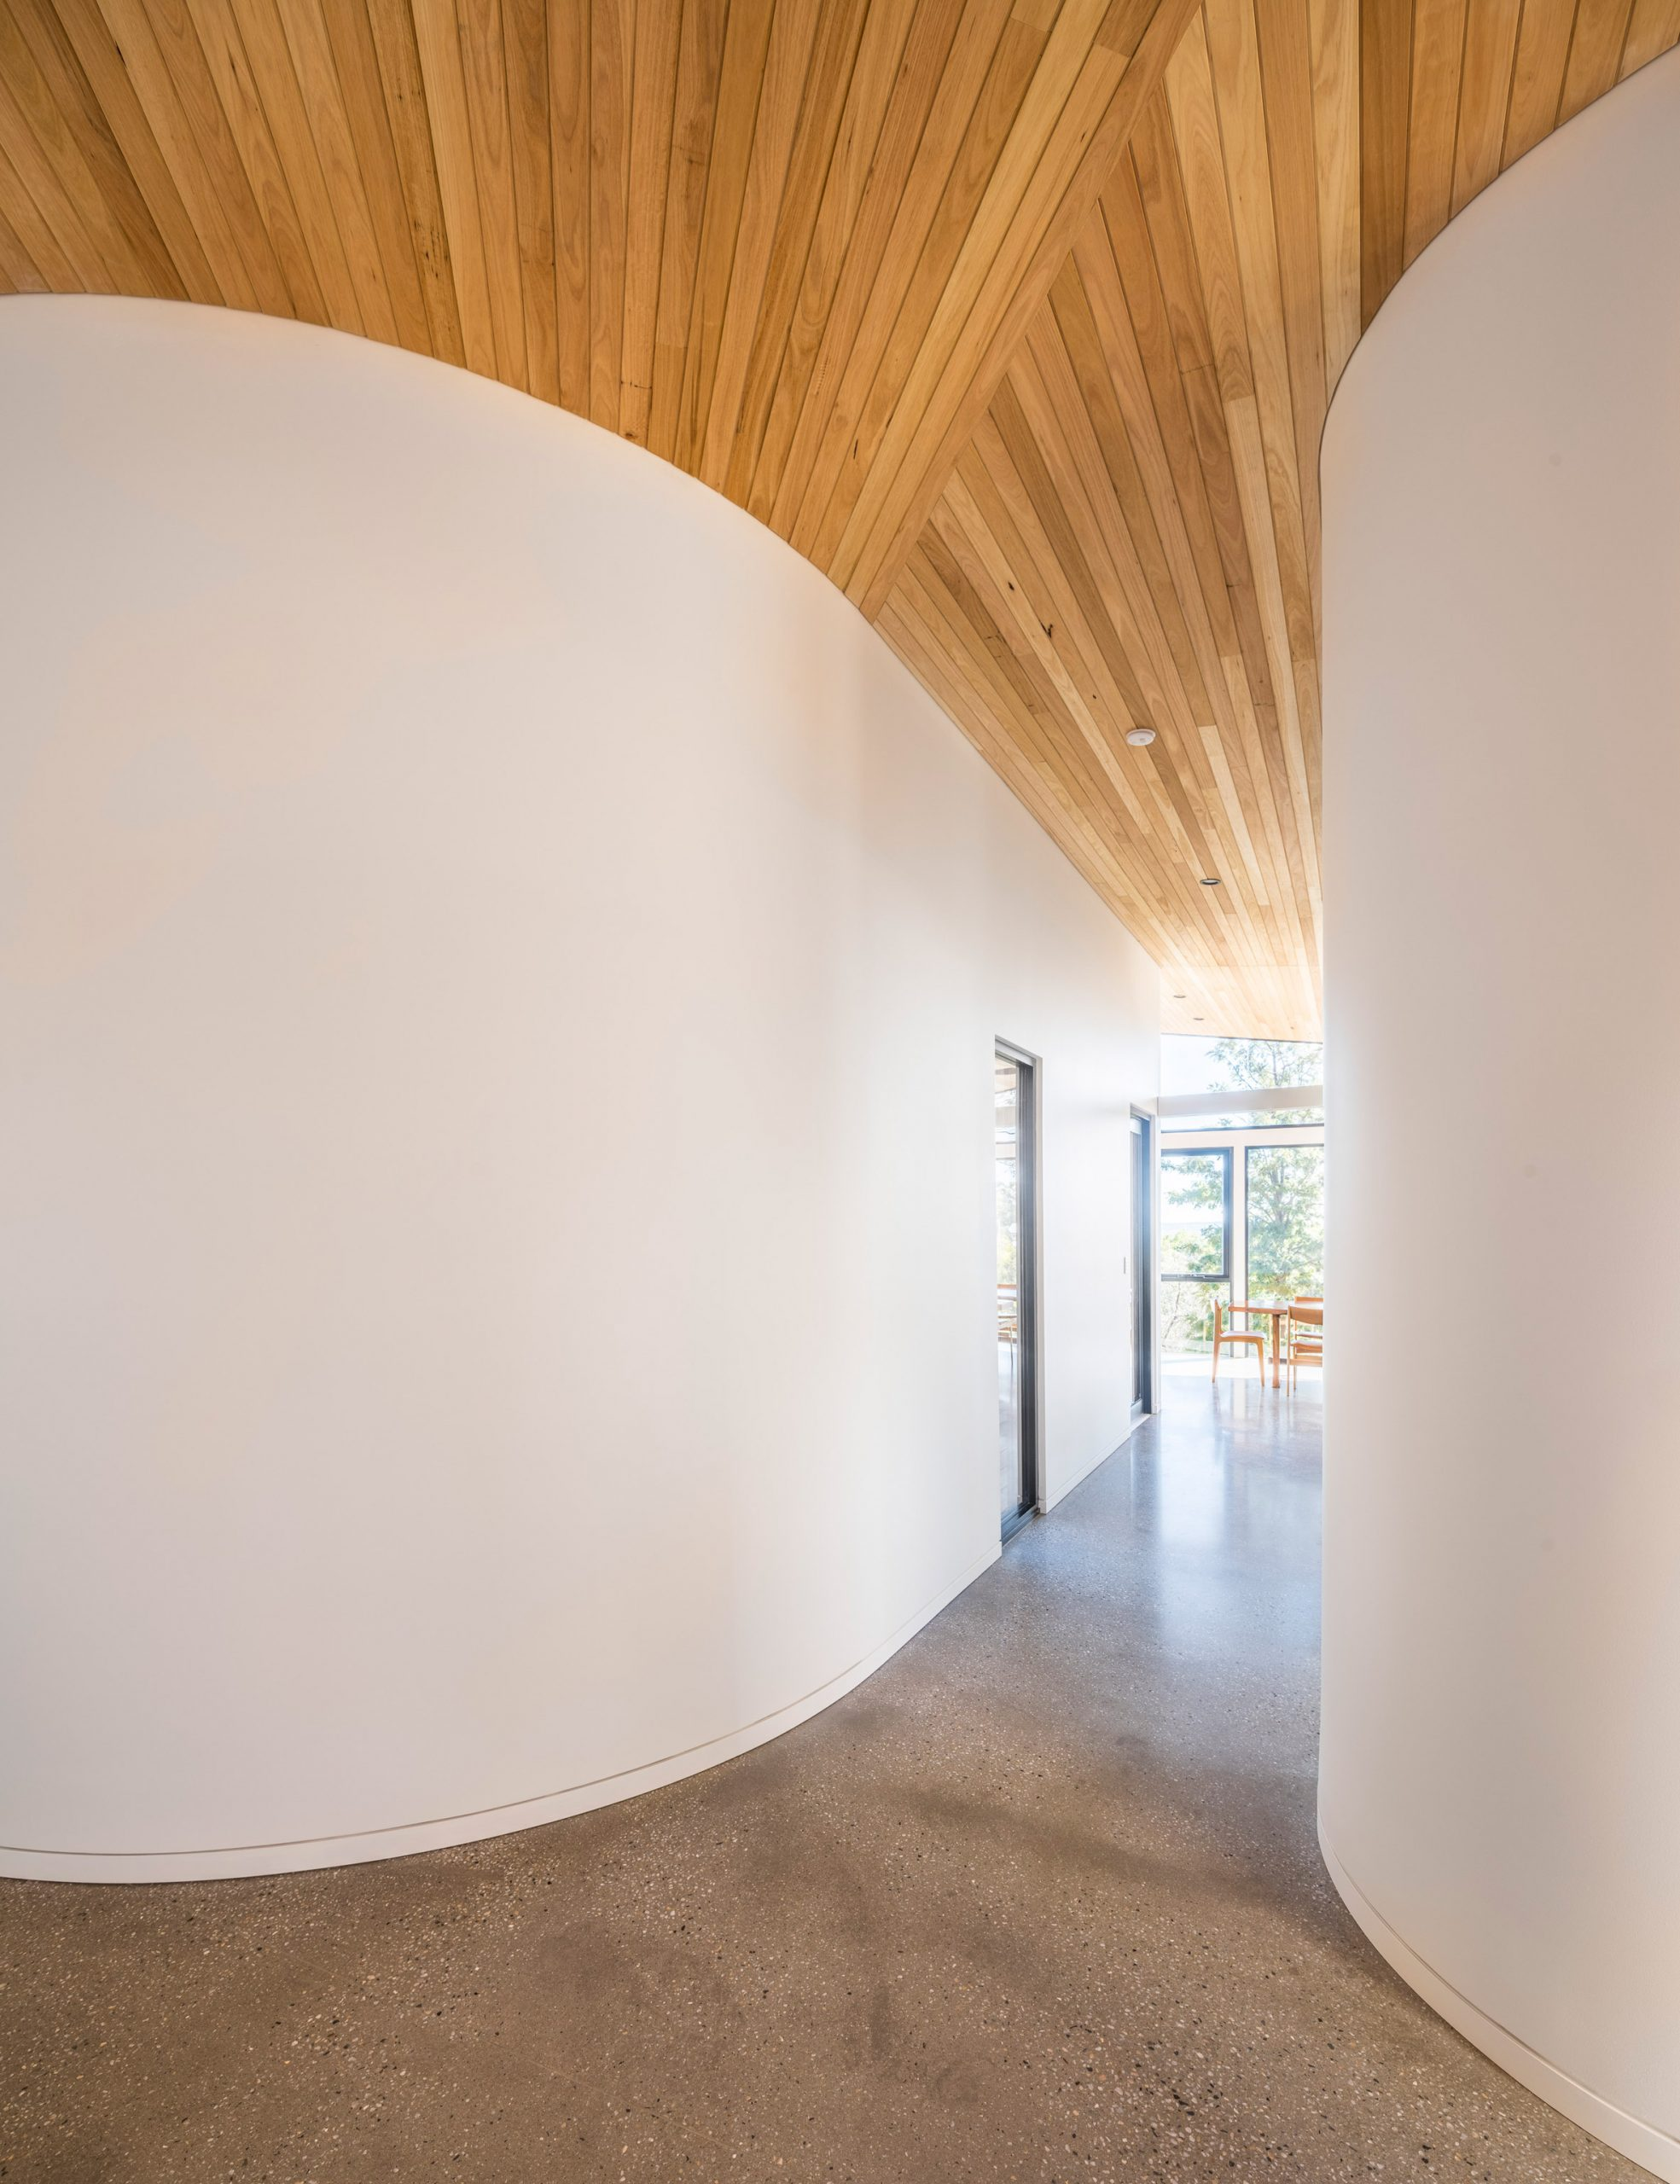 Curved walls in Willunga House by Reuben French-Kennedy